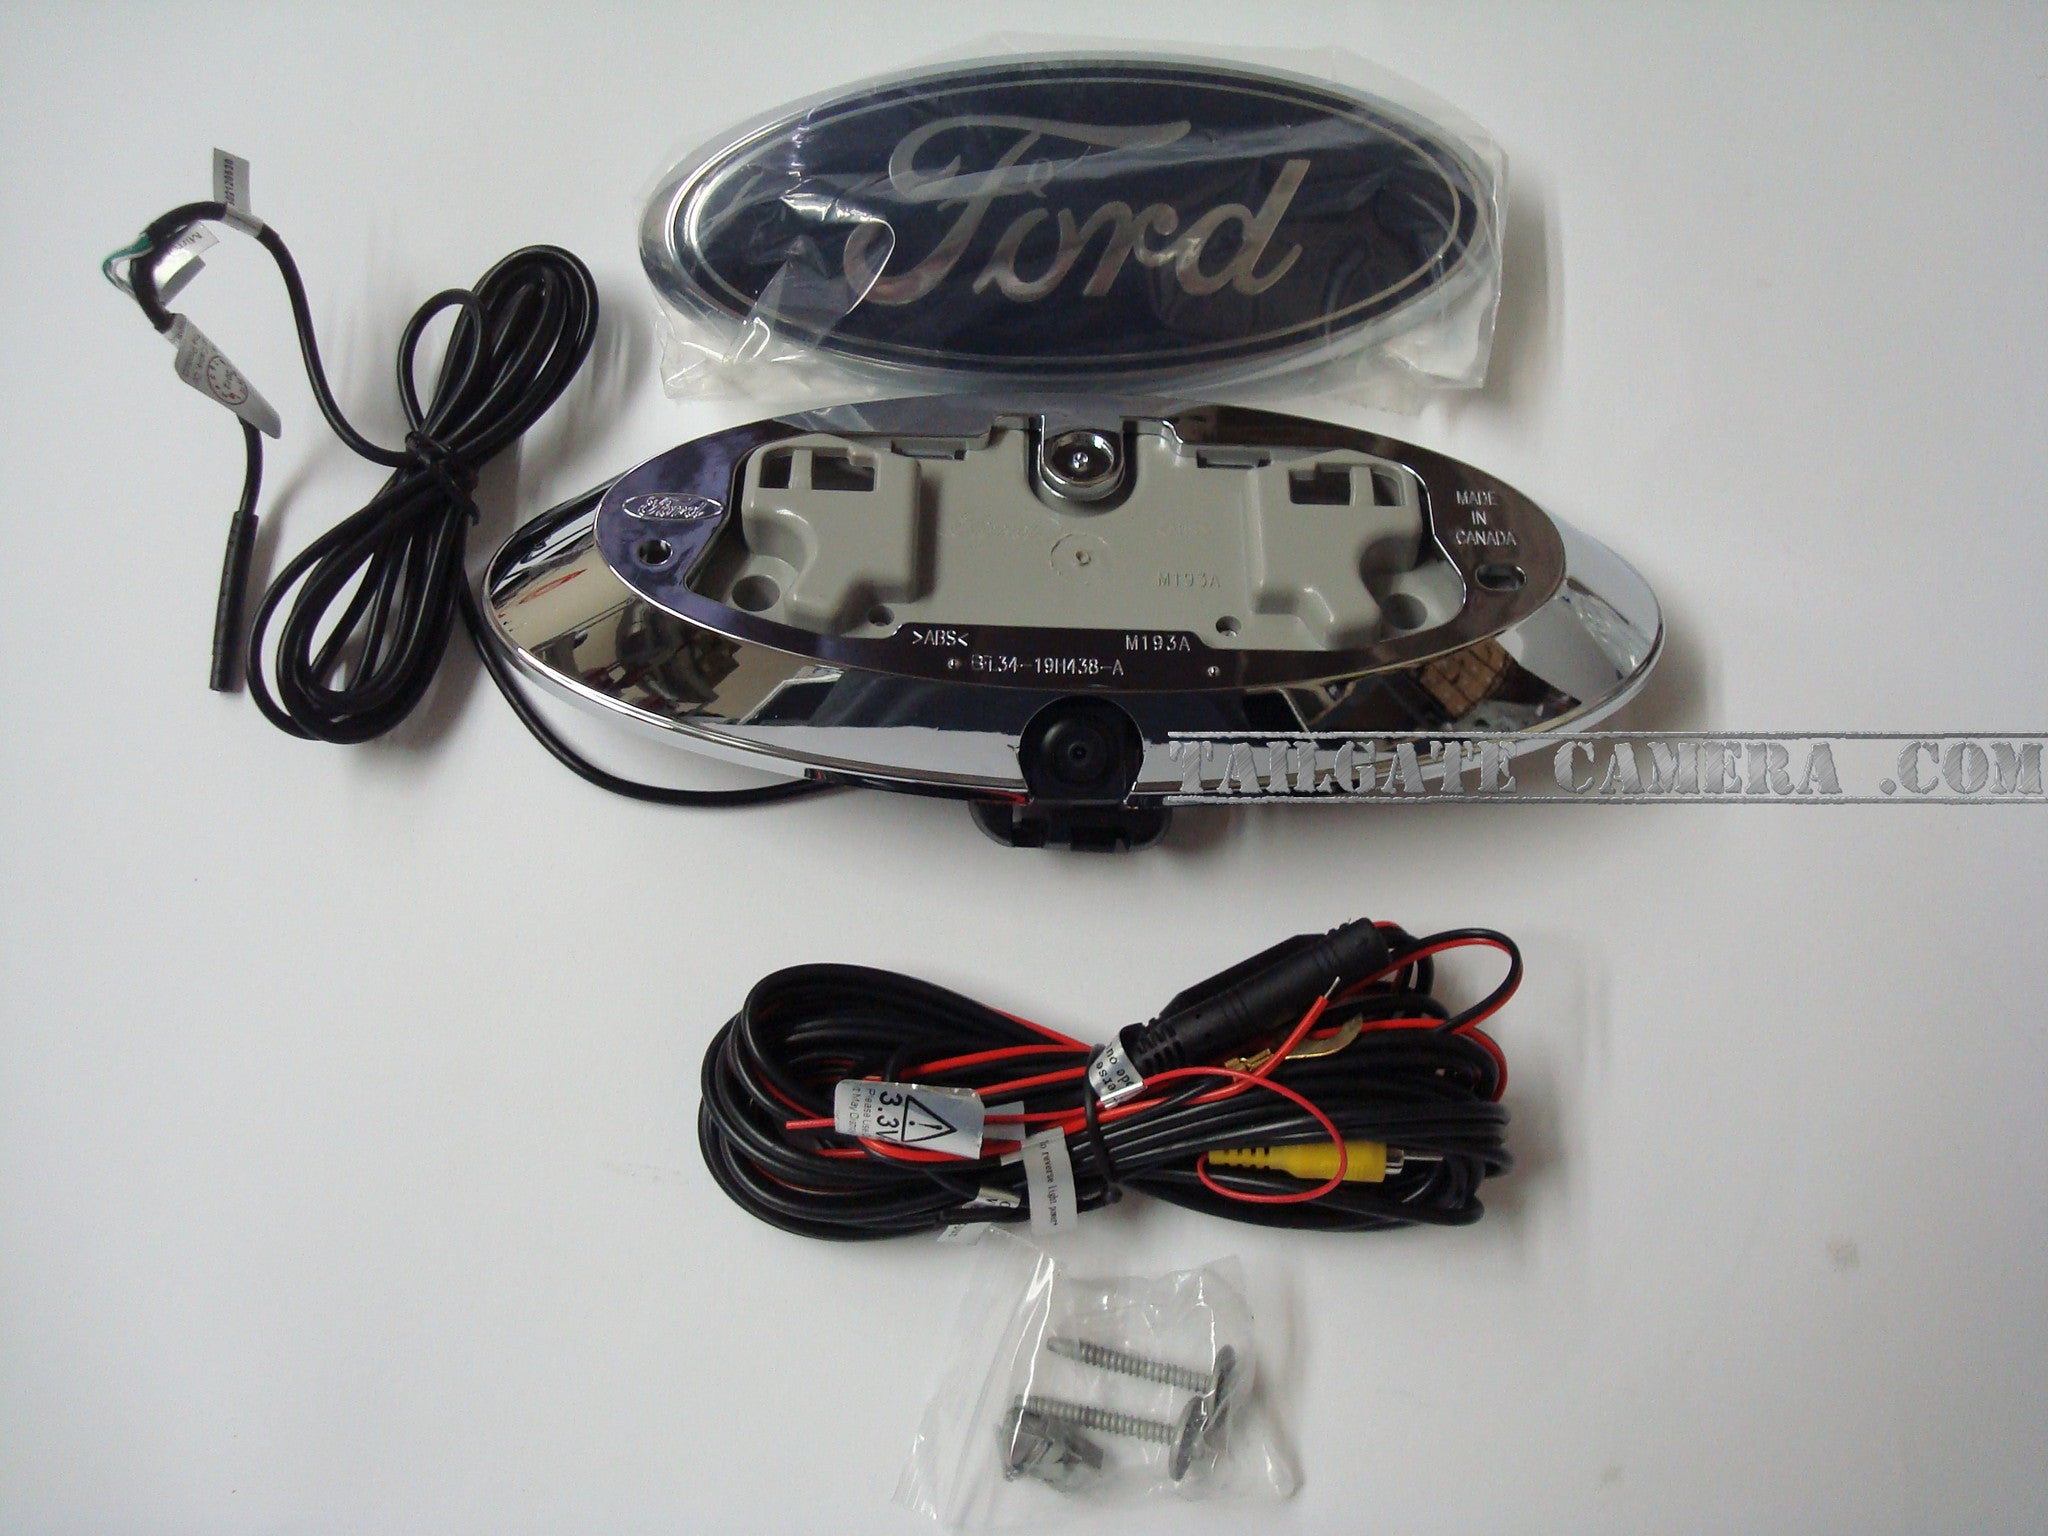 ford f150 tailgate emblem camera ford f250 tailgate camera 2008 f150 wiring diagram